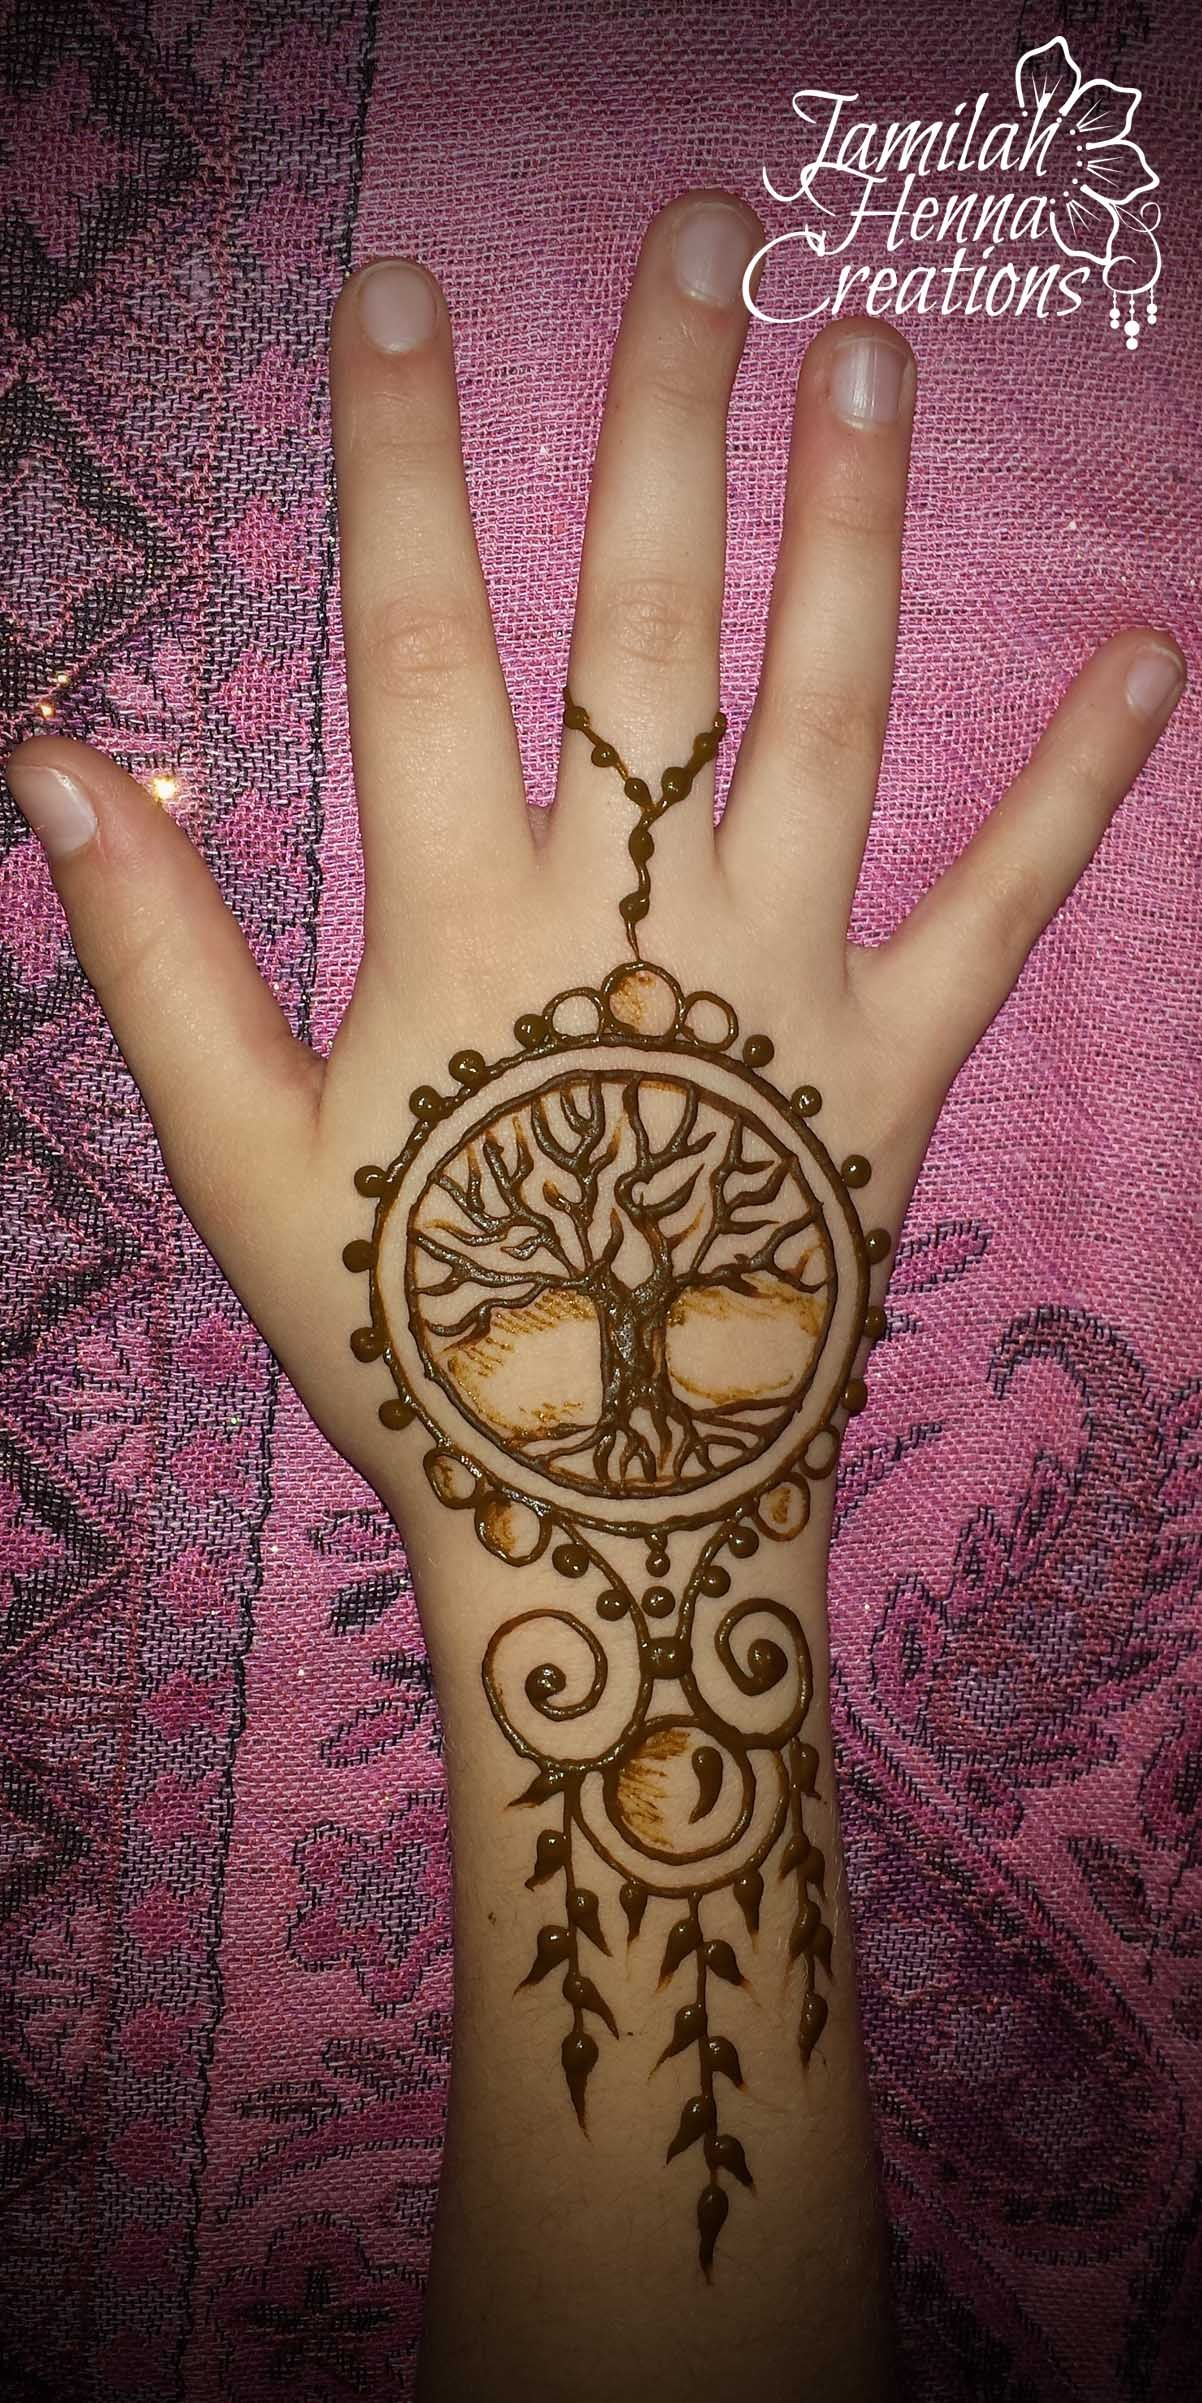 Henna Stencils: Tree Of Life Henna Jewelry Www.jamilahhennacreations.com